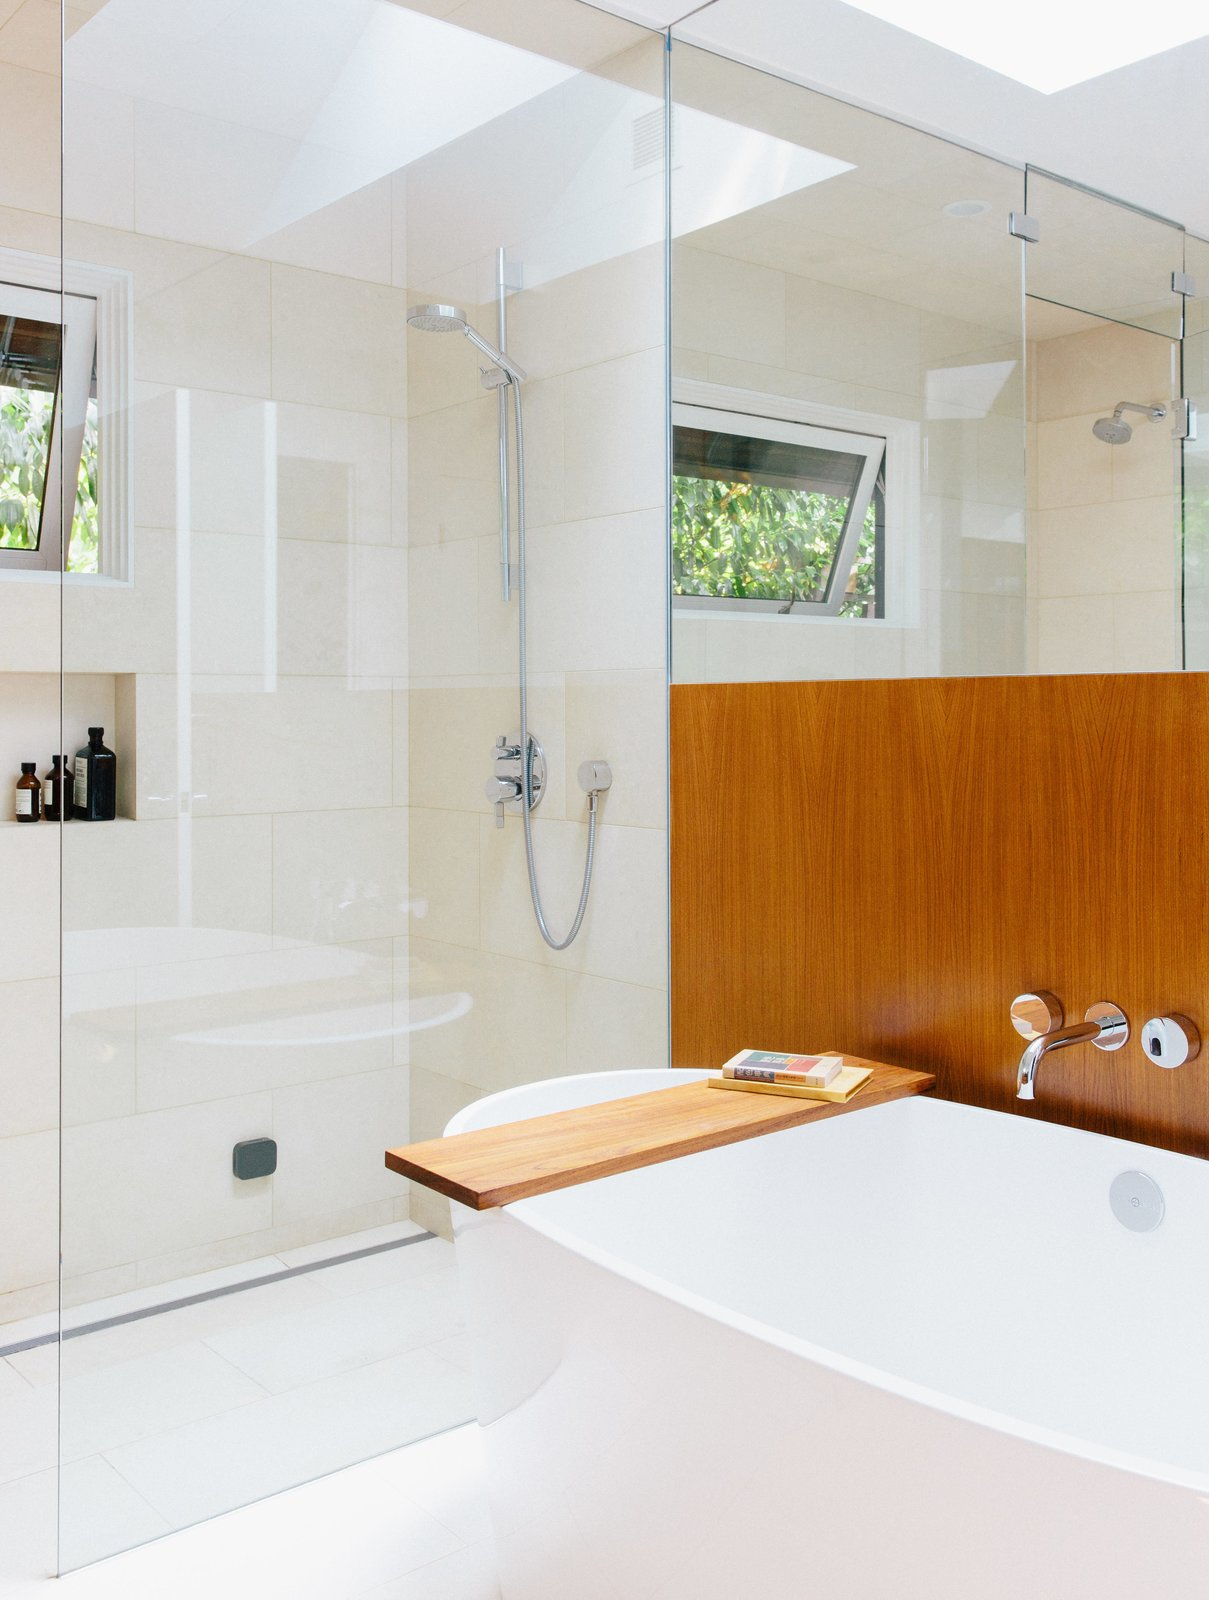 Bath Room and Freestanding Tub The master bath is a bright sanctuary with a freestanding tub by Victoria + Albert and Ecostat shower fixtures by Hansgrohe.  Photo 6 of 11 in Wood Paneling Loses its Dated Reputation with This Renovation of a 1959 Portland Gem